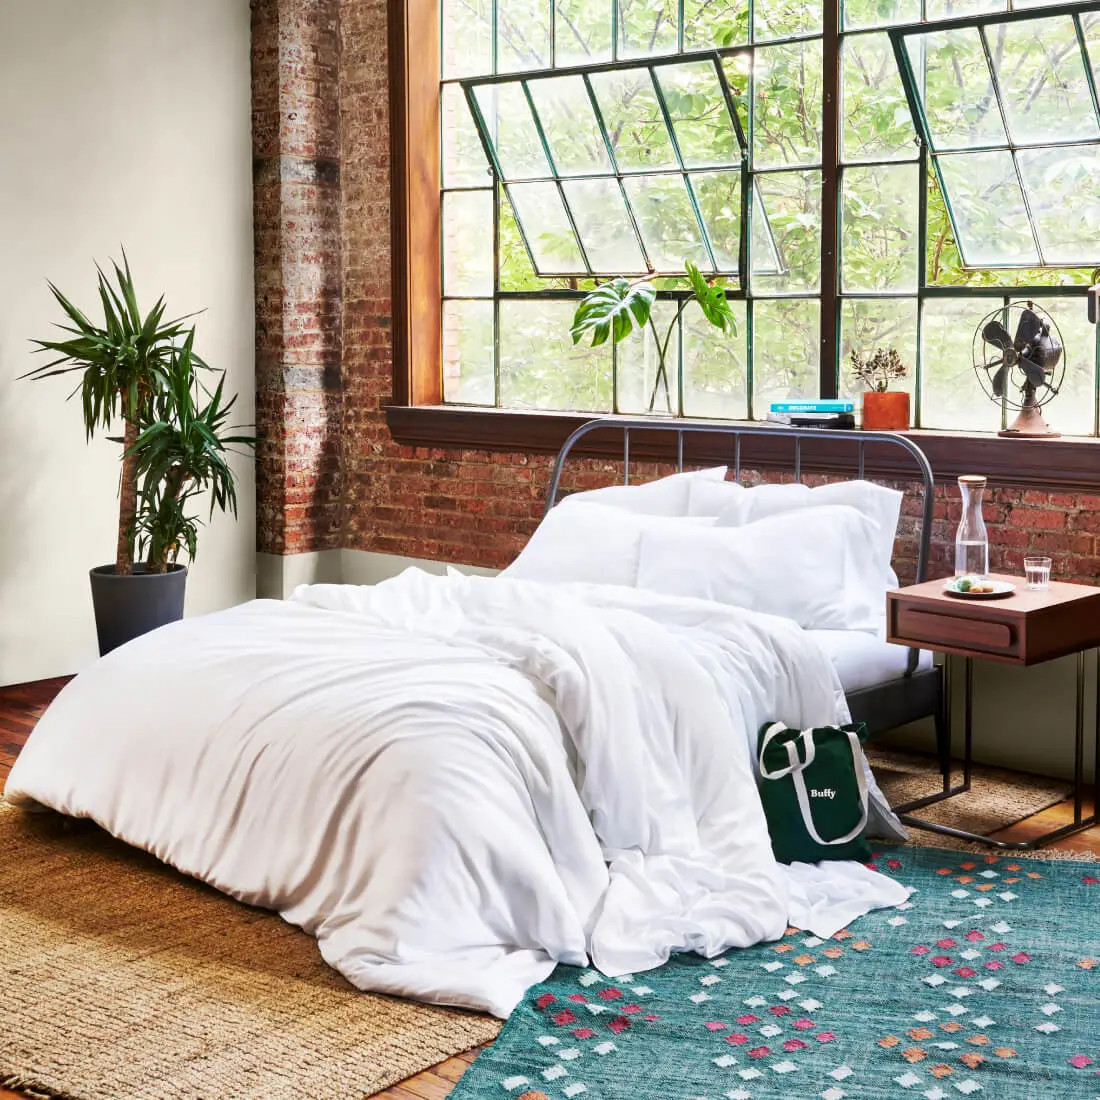 is this mattress protector right for you?